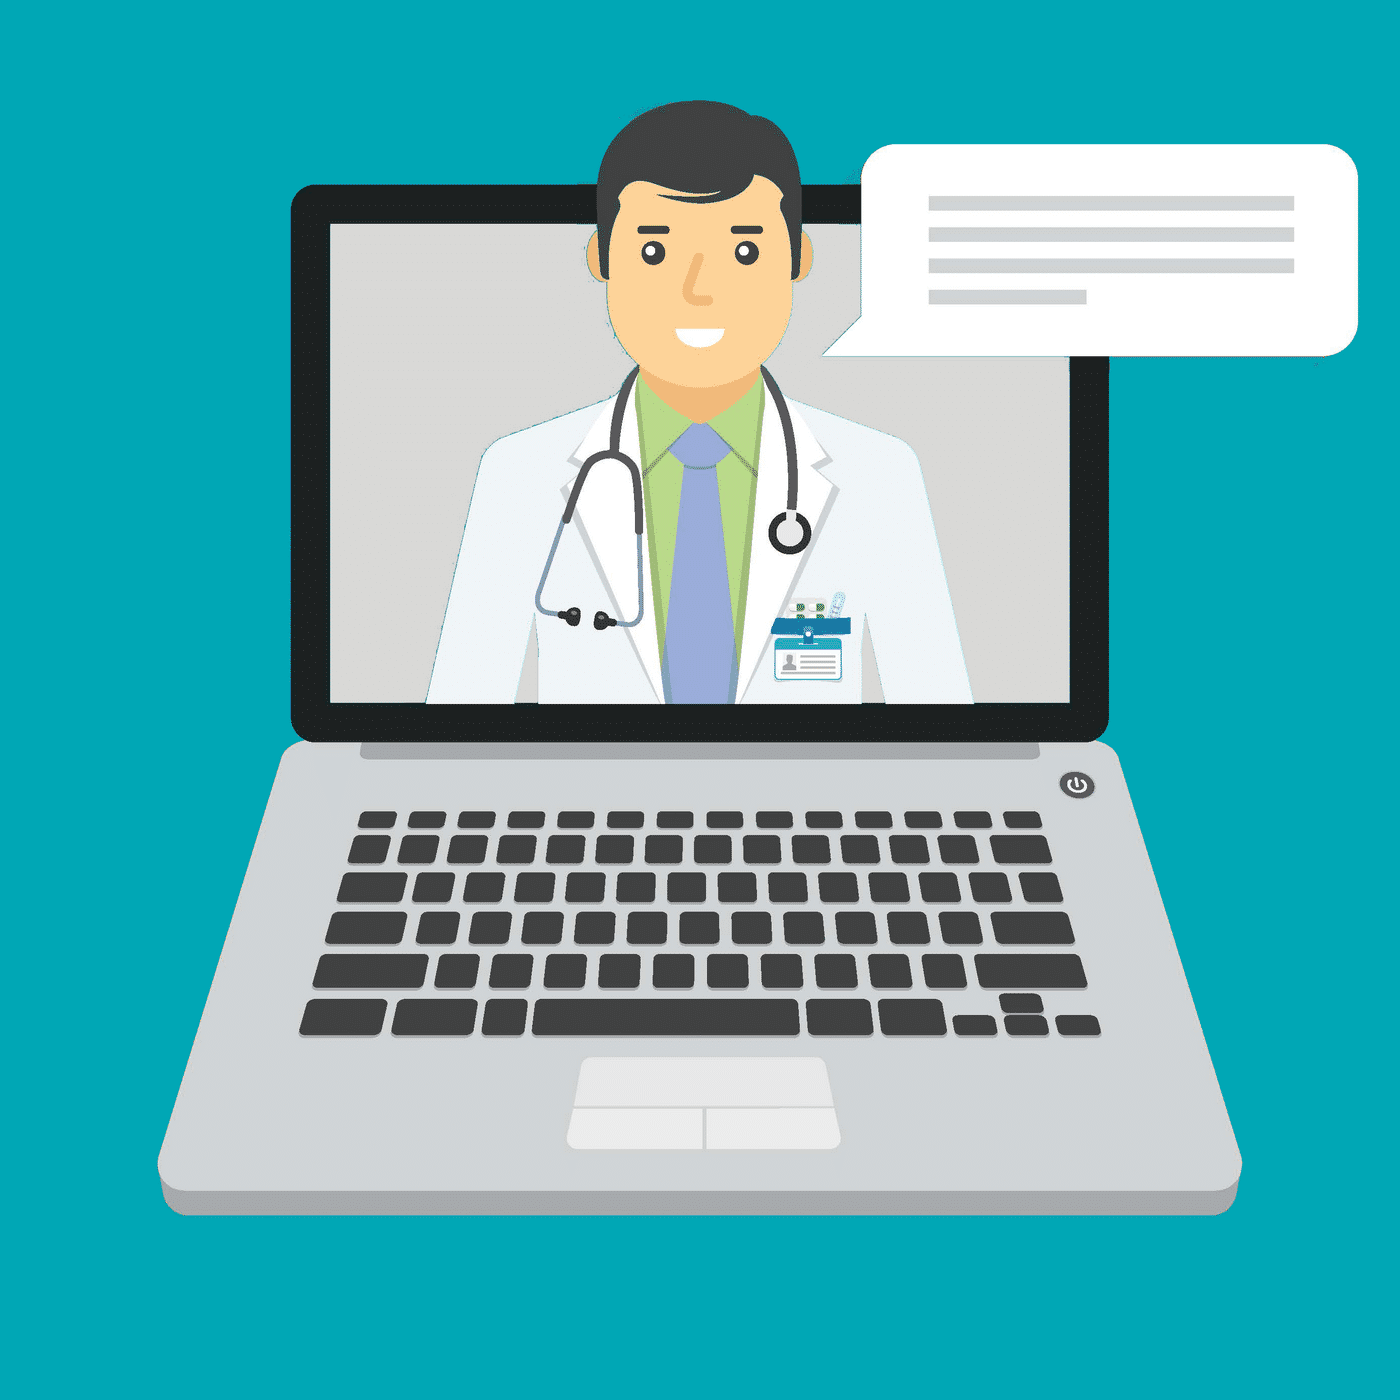 3 Ways to Use Technology to Engage Patients